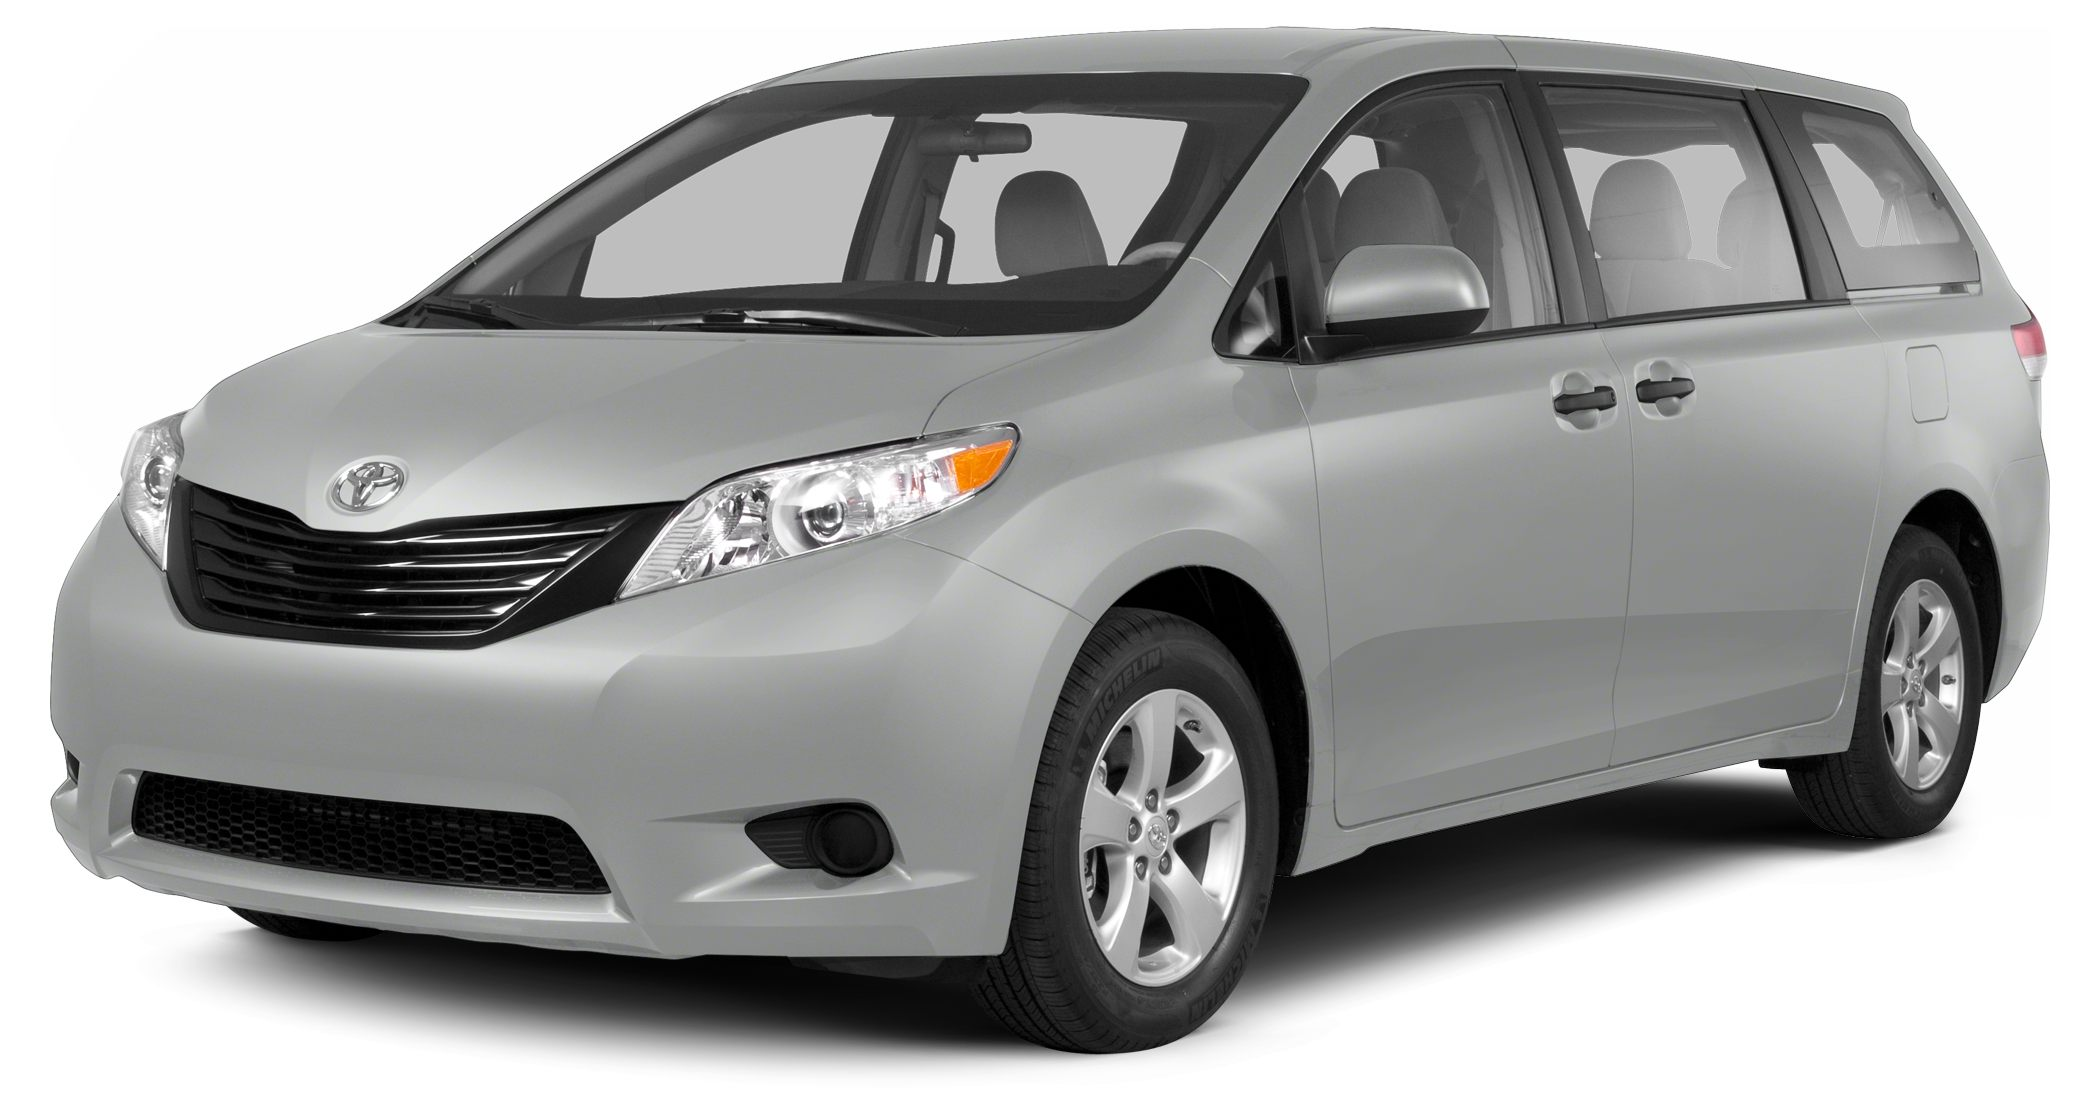 2013 Toyota Sienna LE Westboro Toyota Right People Right Price Right Now - You asked and we lis